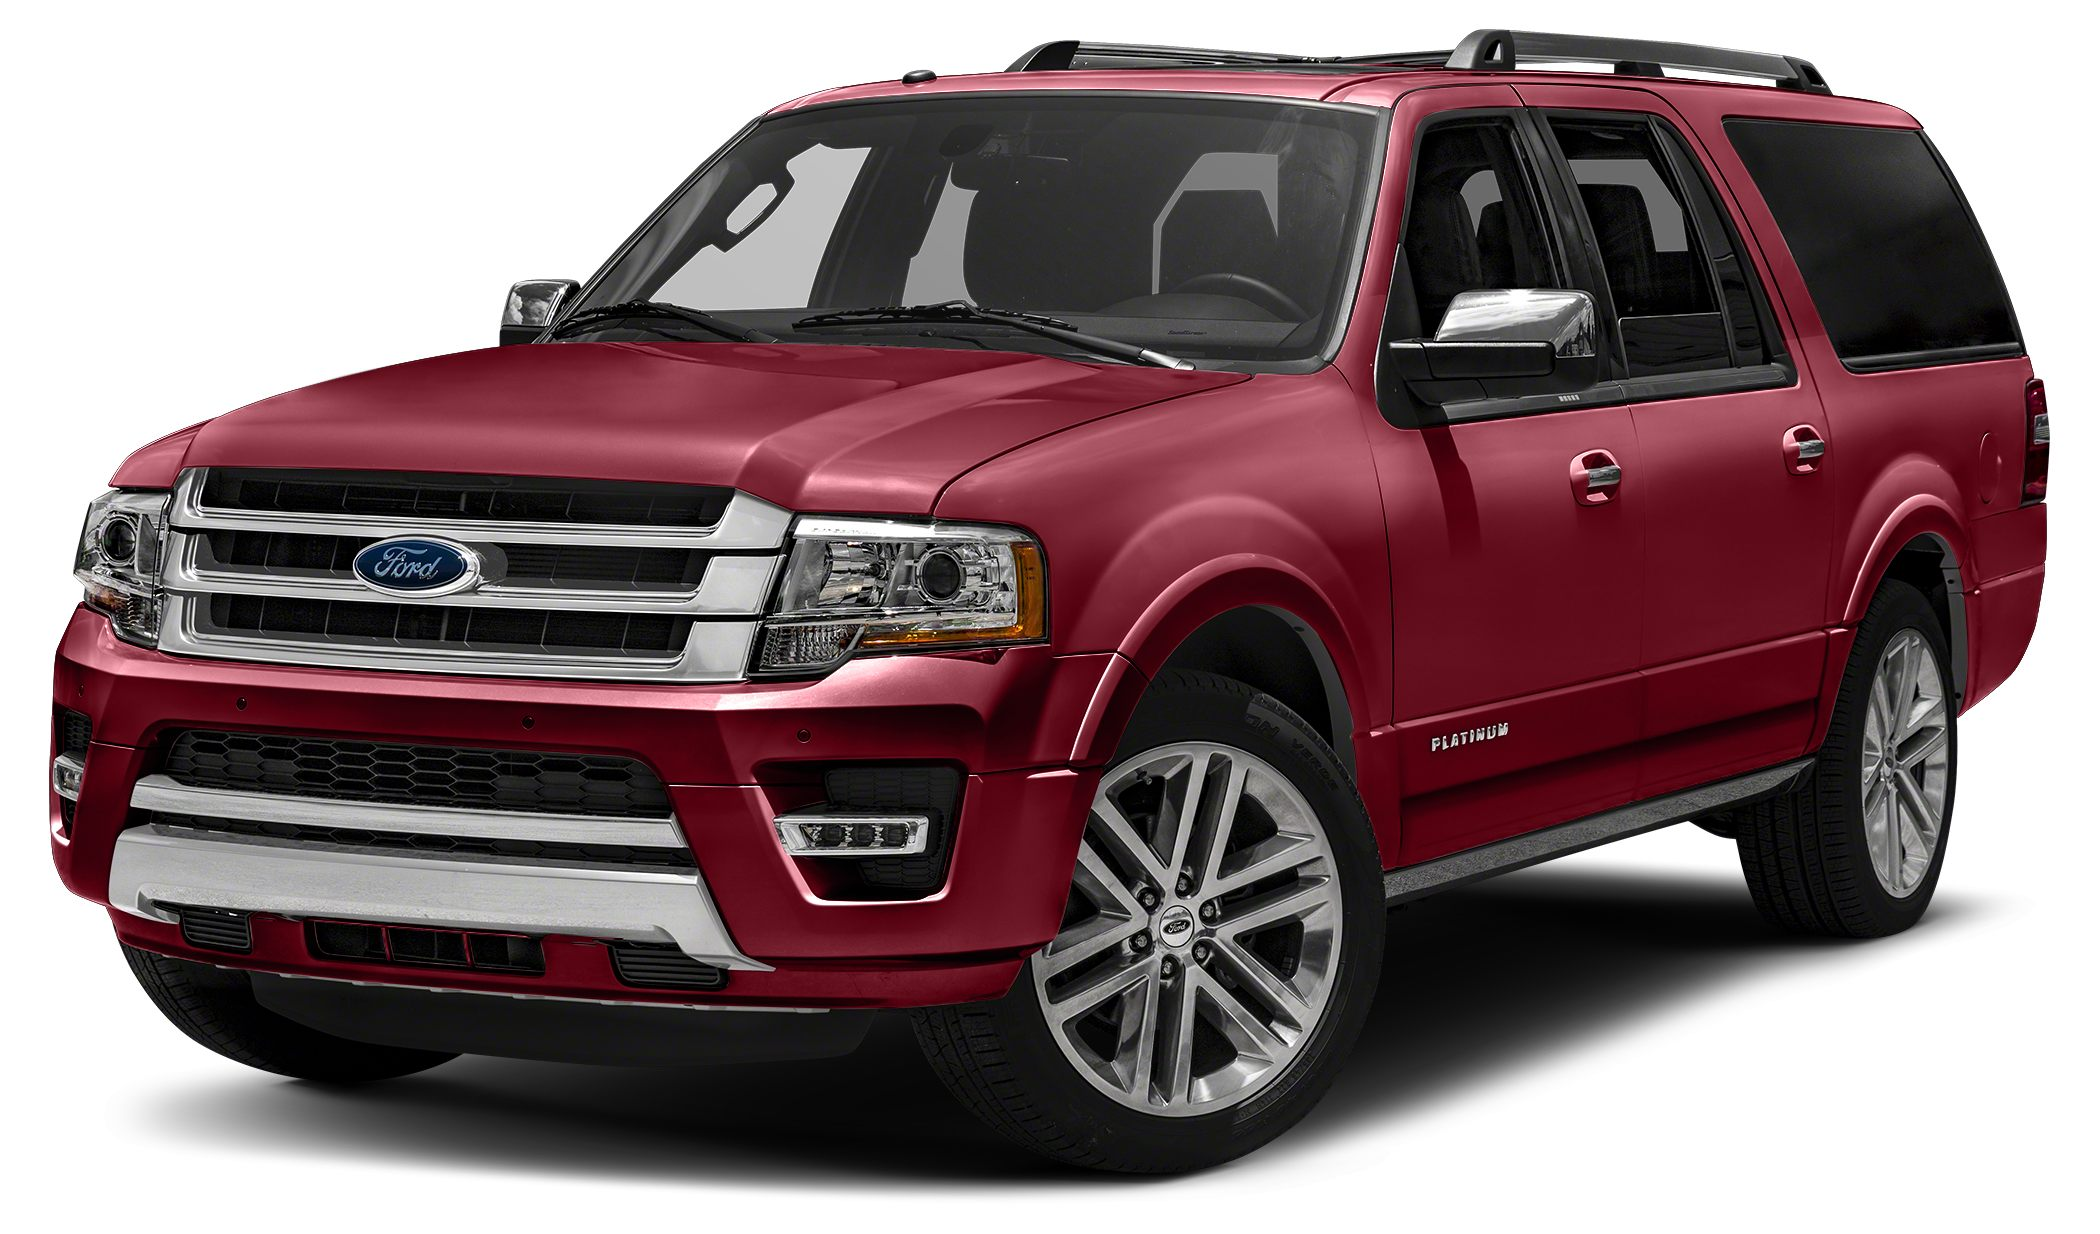 2017 Ford Expedition EL Platinum 2017 Ford Expedition EL Platinum At Mullinax there are NO DEALE